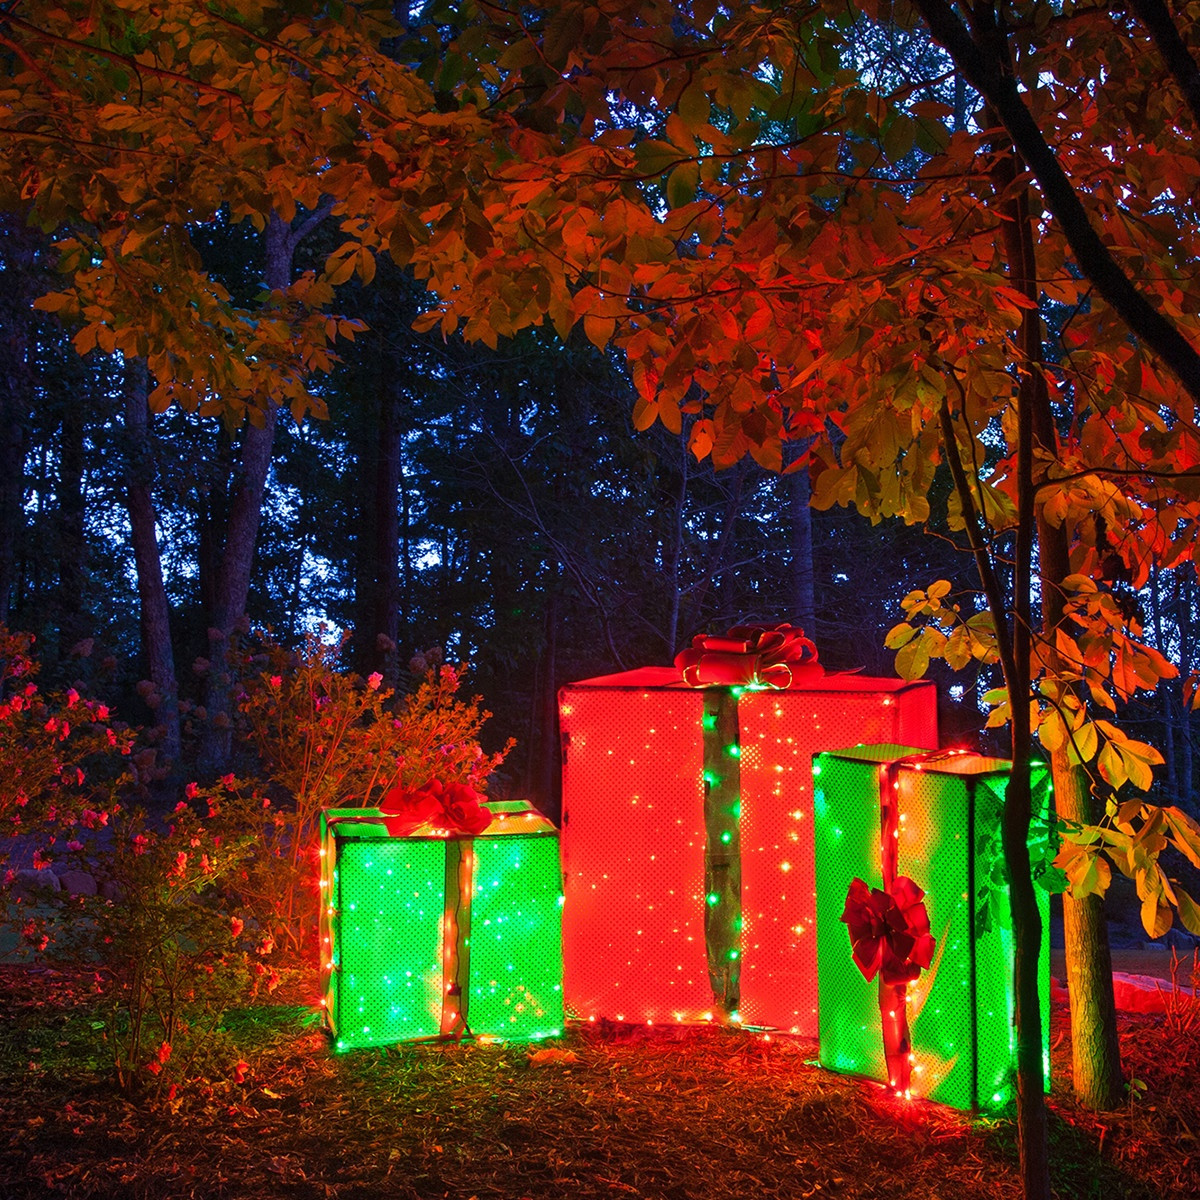 Best ideas about DIY Christmas Decorations Outdoors . Save or Pin DIY Christmas Decorations 4 Lighted Gift Boxes Now.